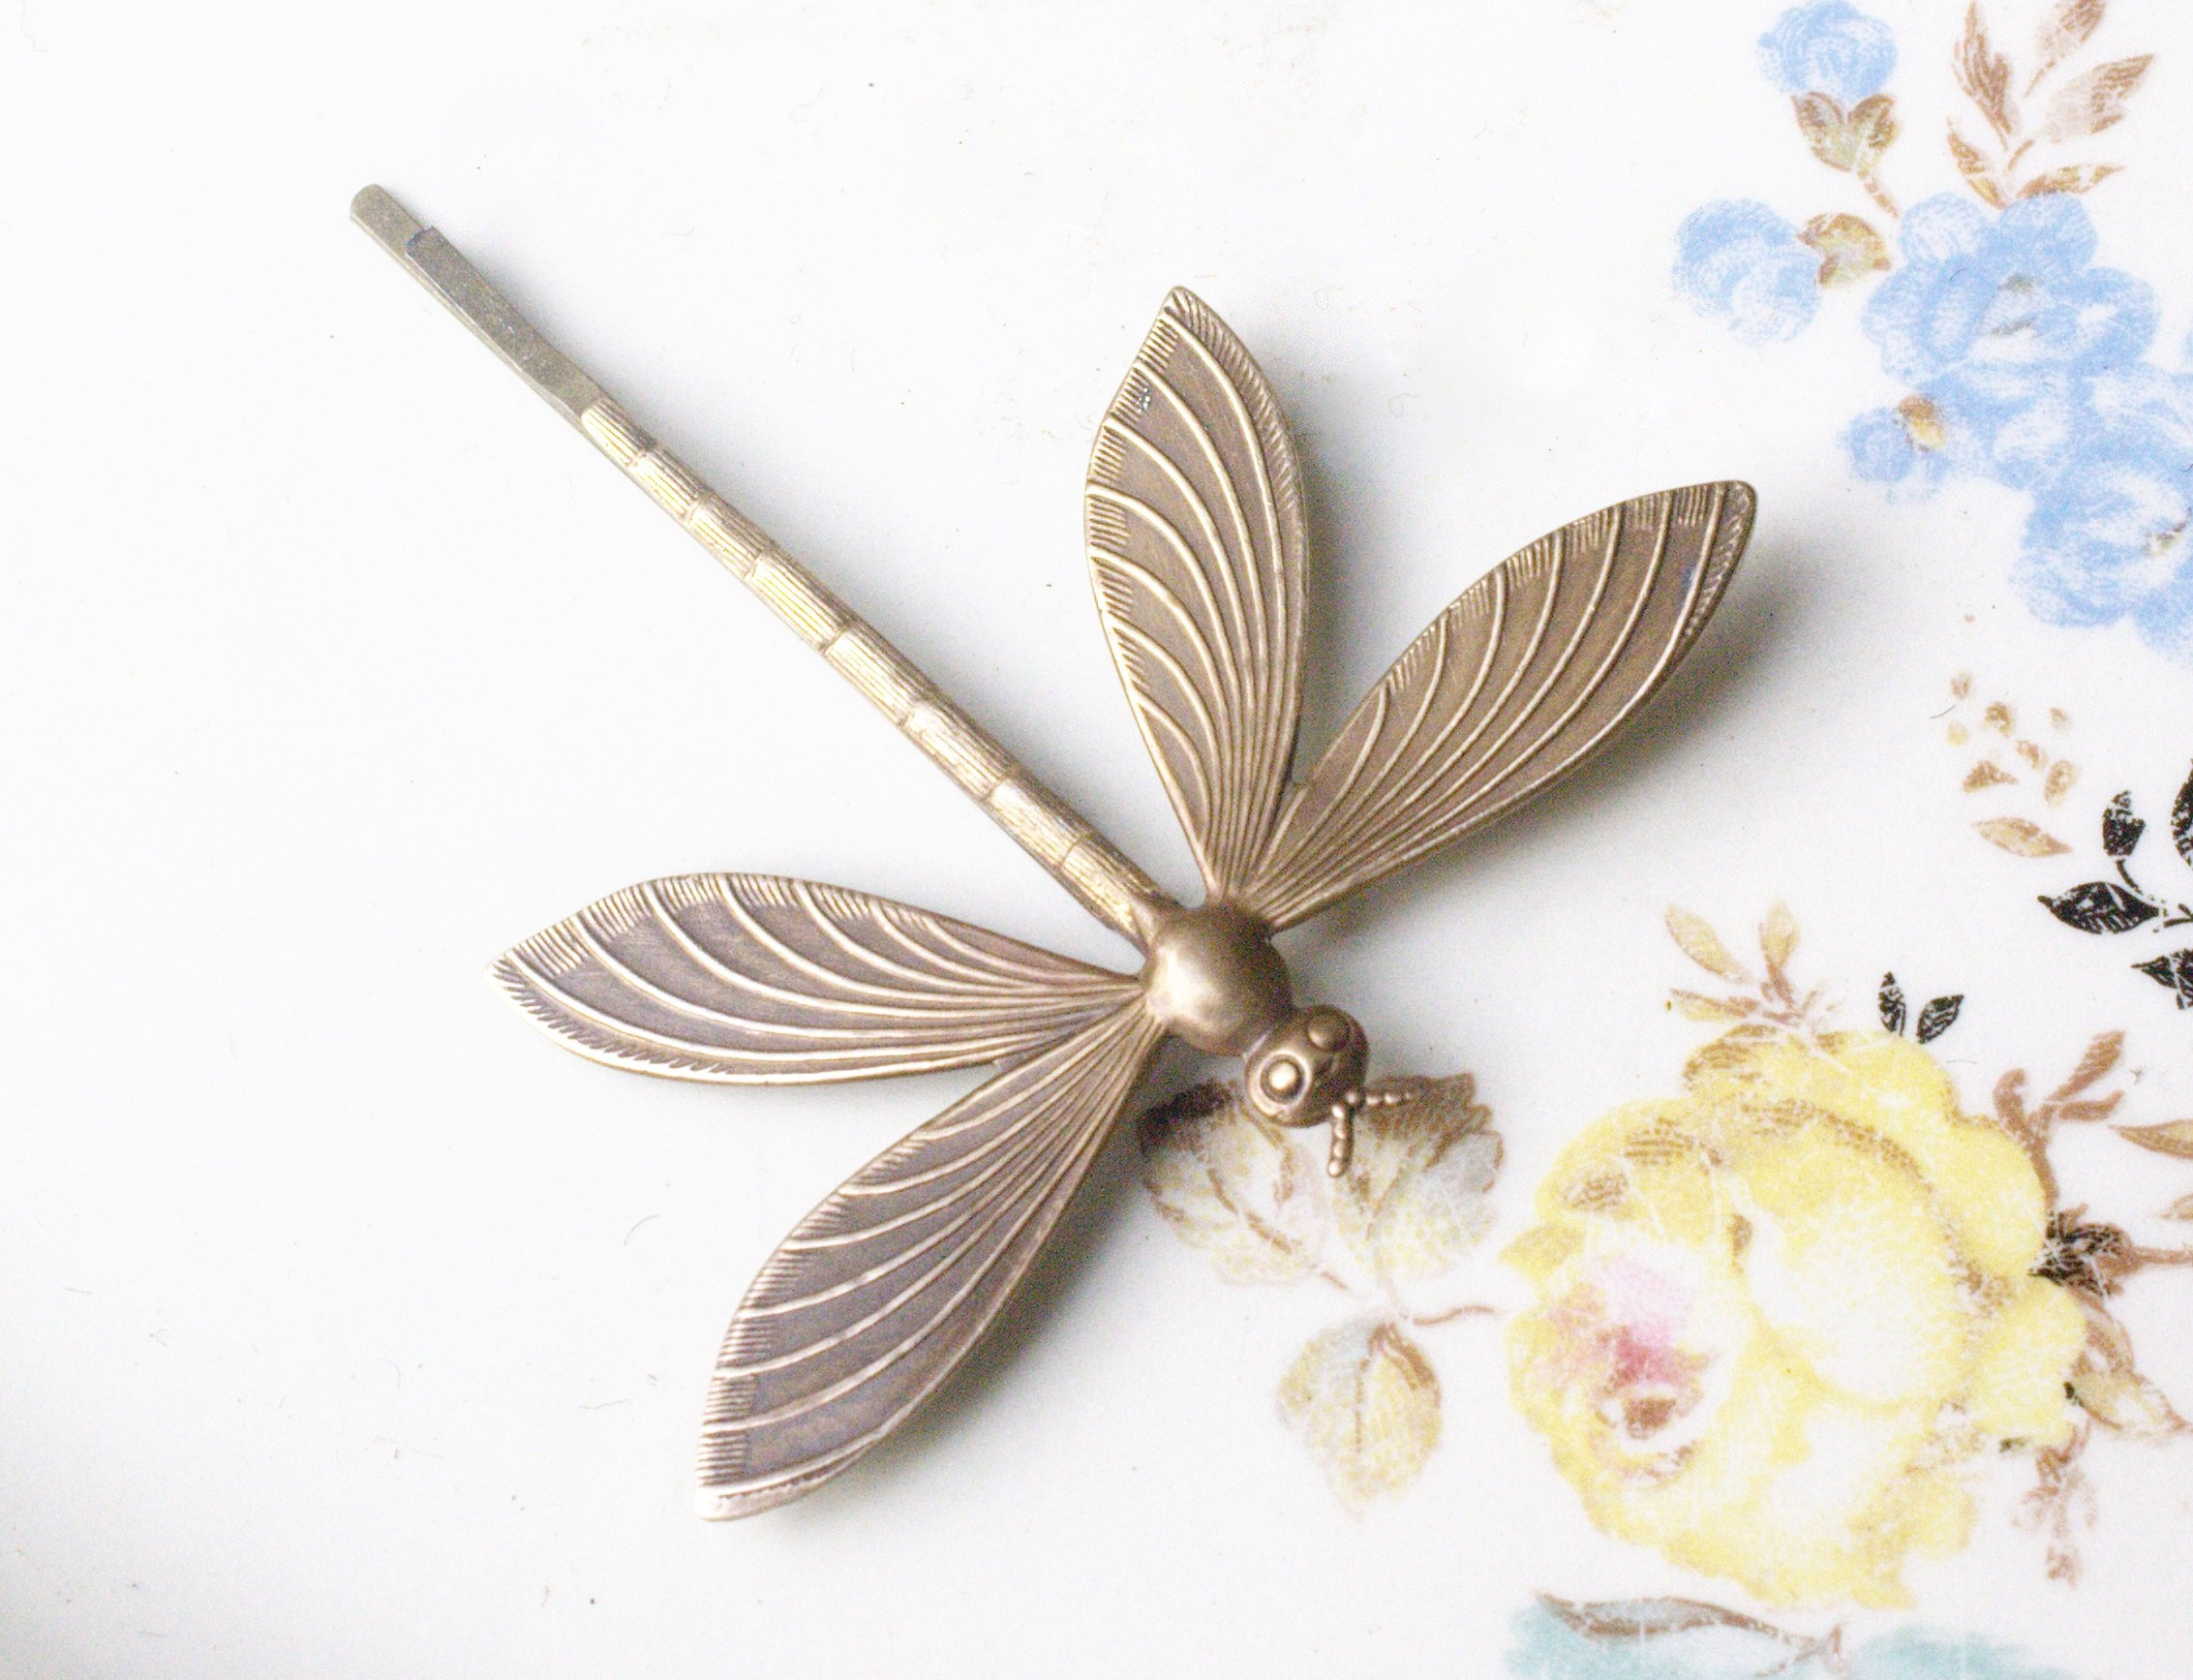 Dragonfly hair pin bronze 1920's art nouveau vintage style bobby pin Victorian bridal spring wedding hair accessory